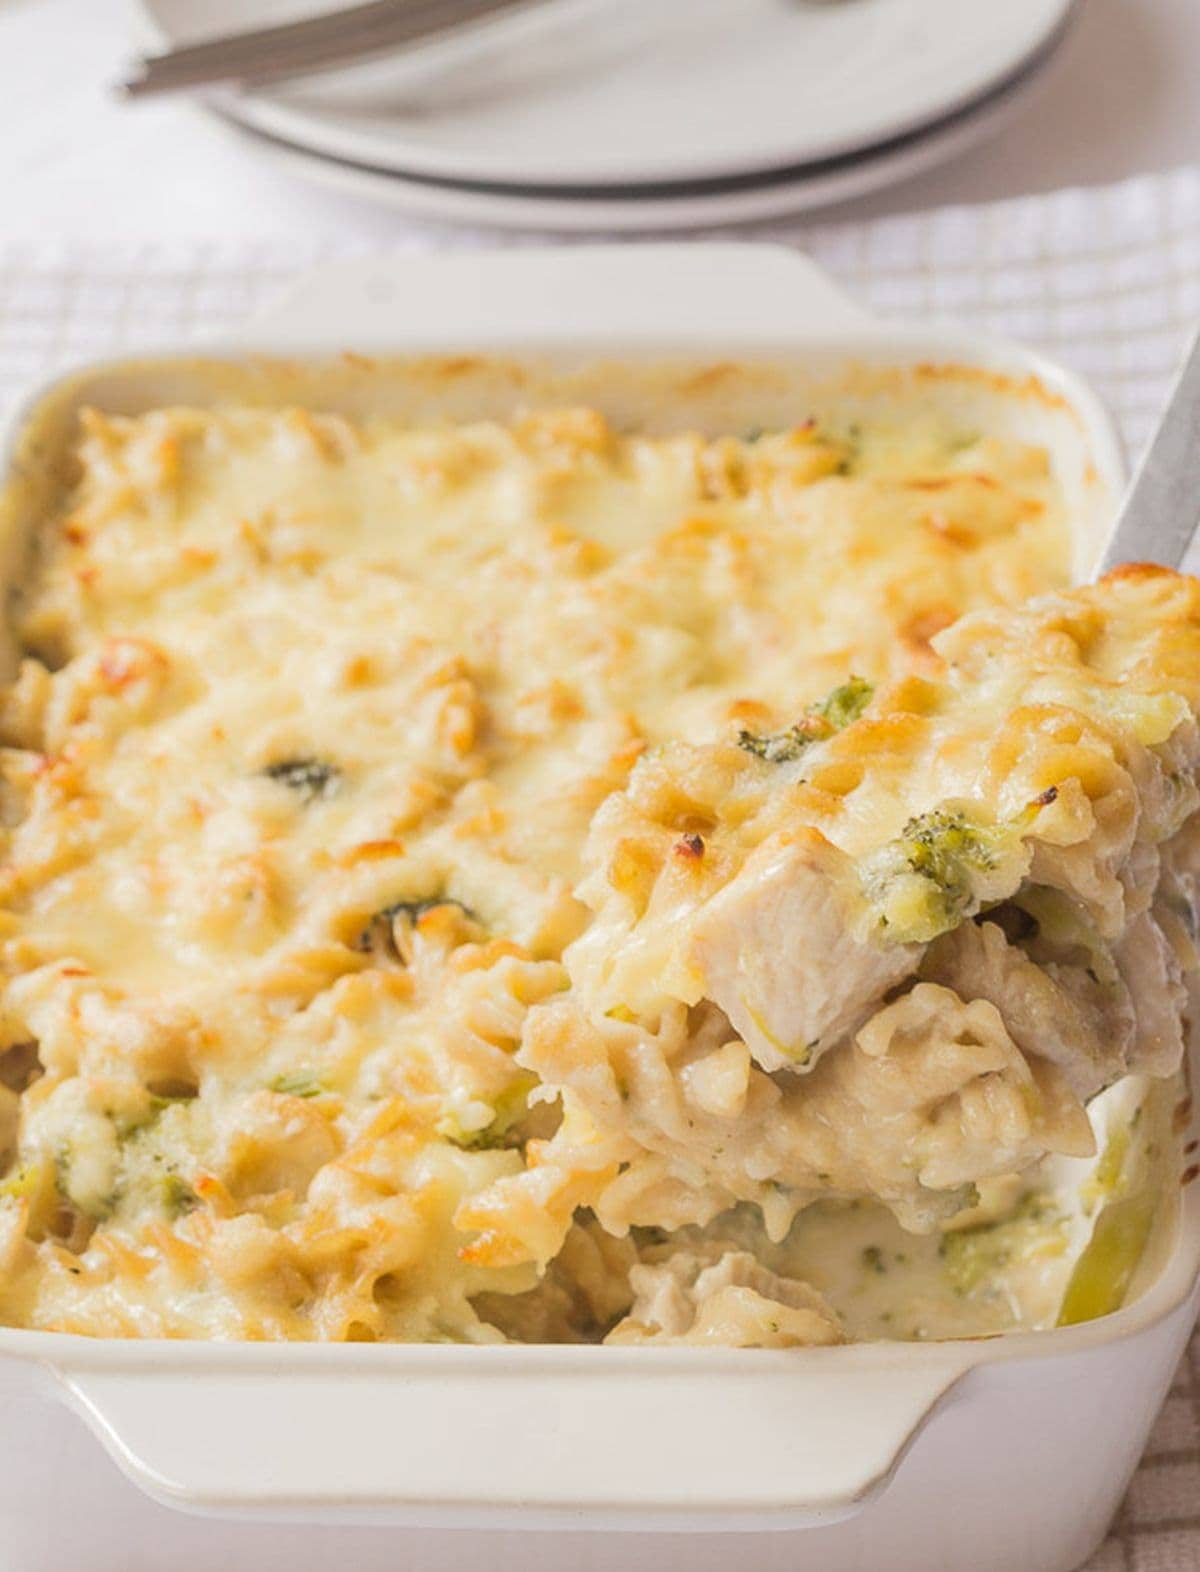 A slice of chicken broccoli stilton pasta bake being lifted from the cooked casserole dish.